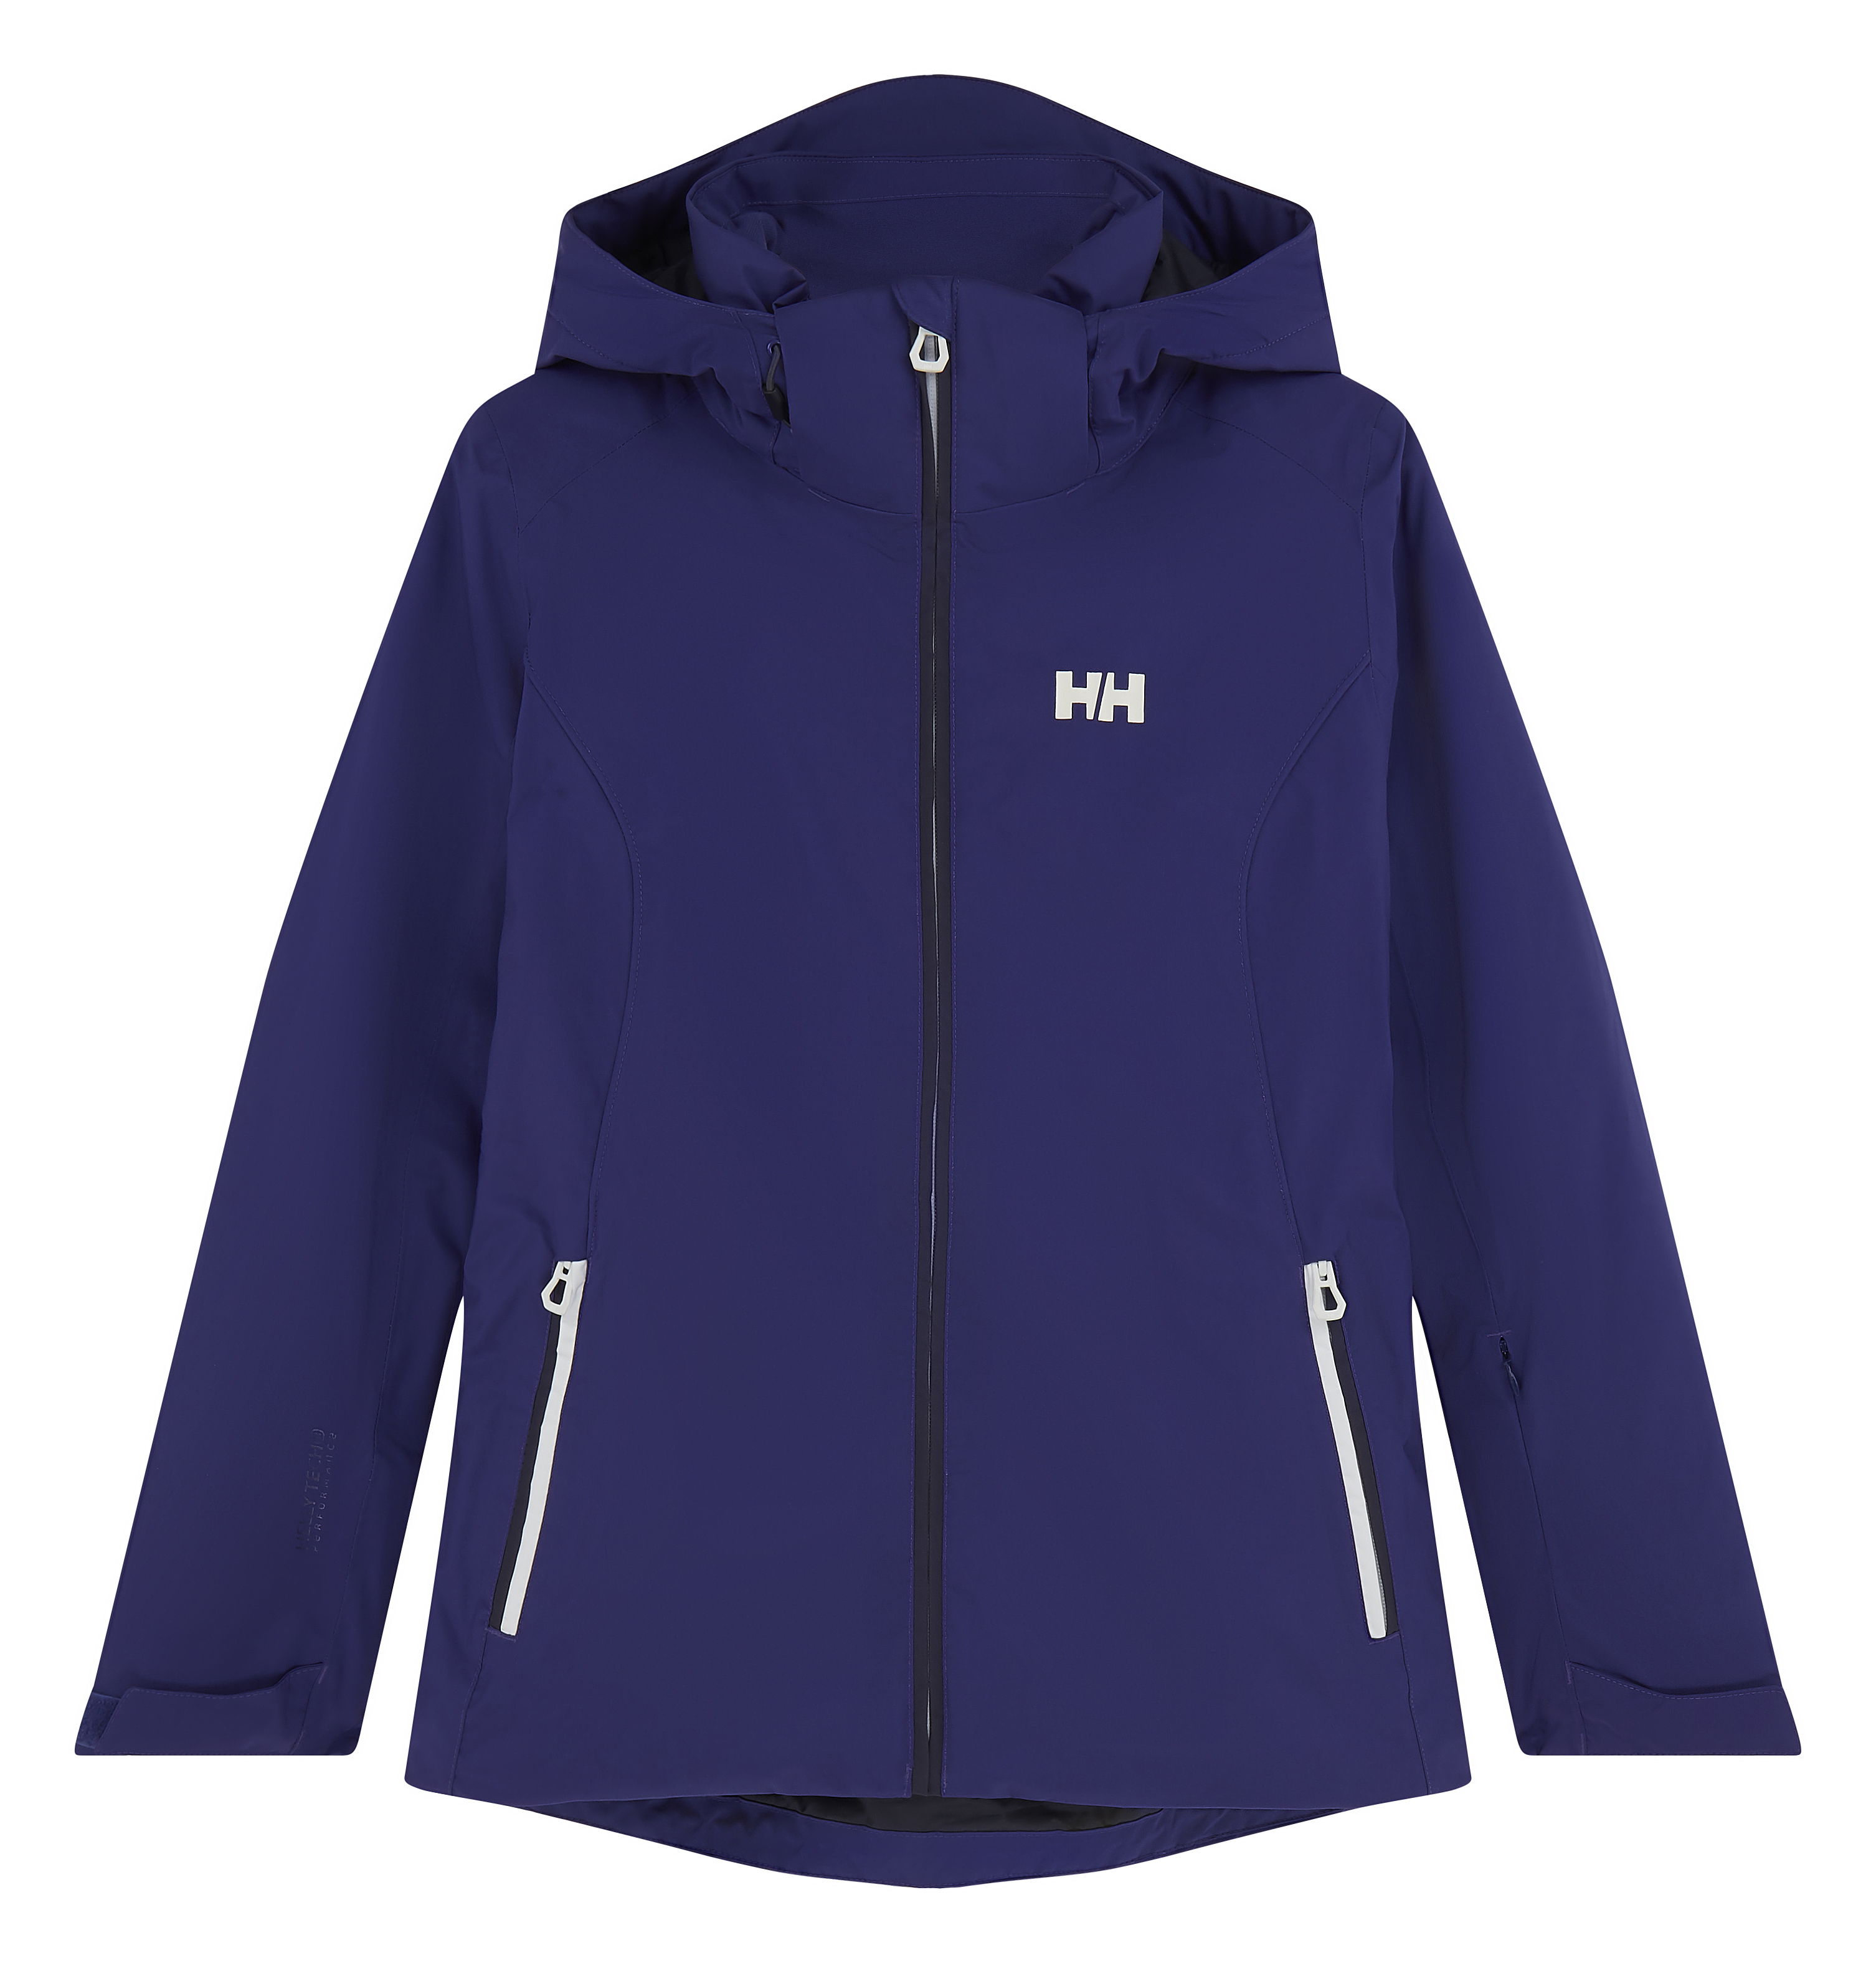 Helly Hansen Women's Hooded Jacket in Purple